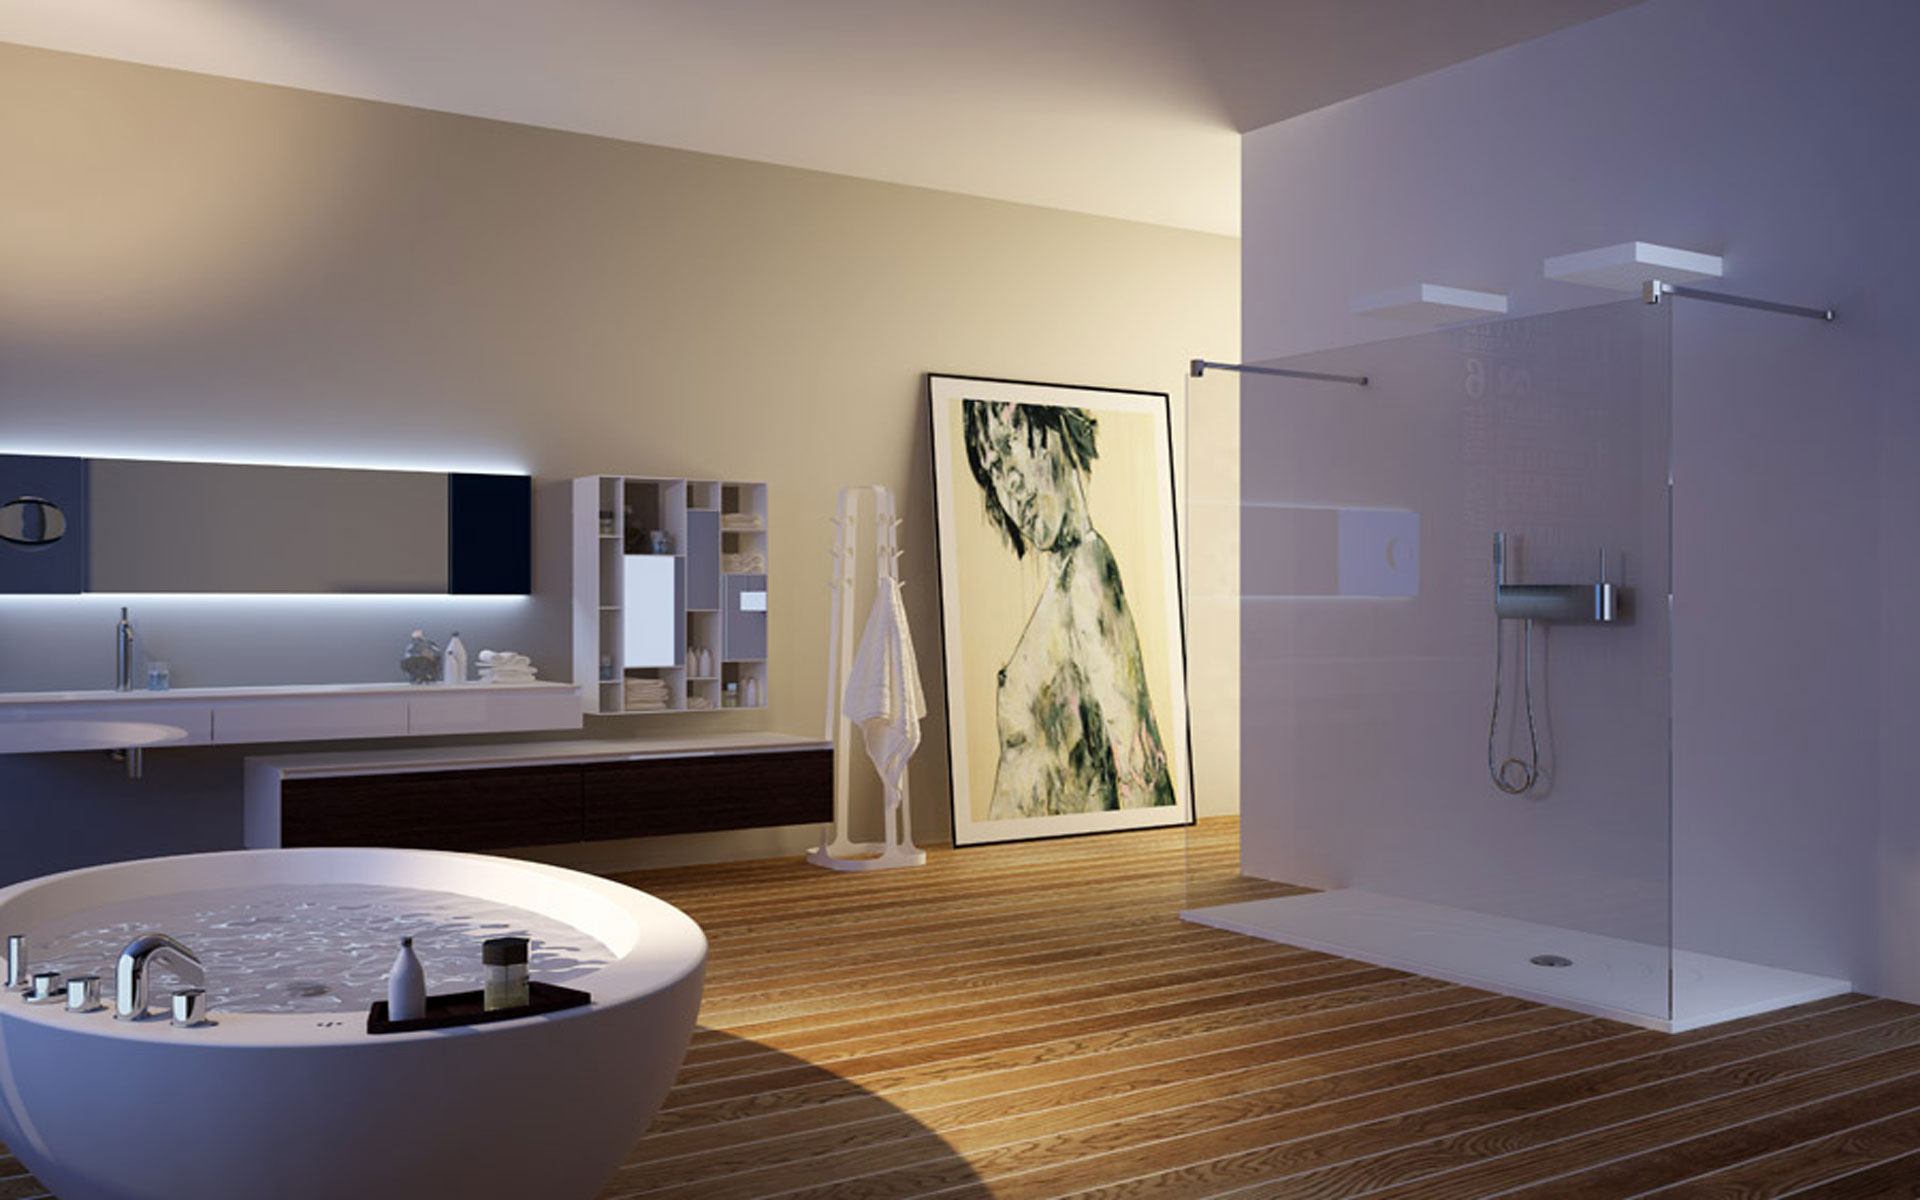 Moma design casa italia for Arredo bagno di design